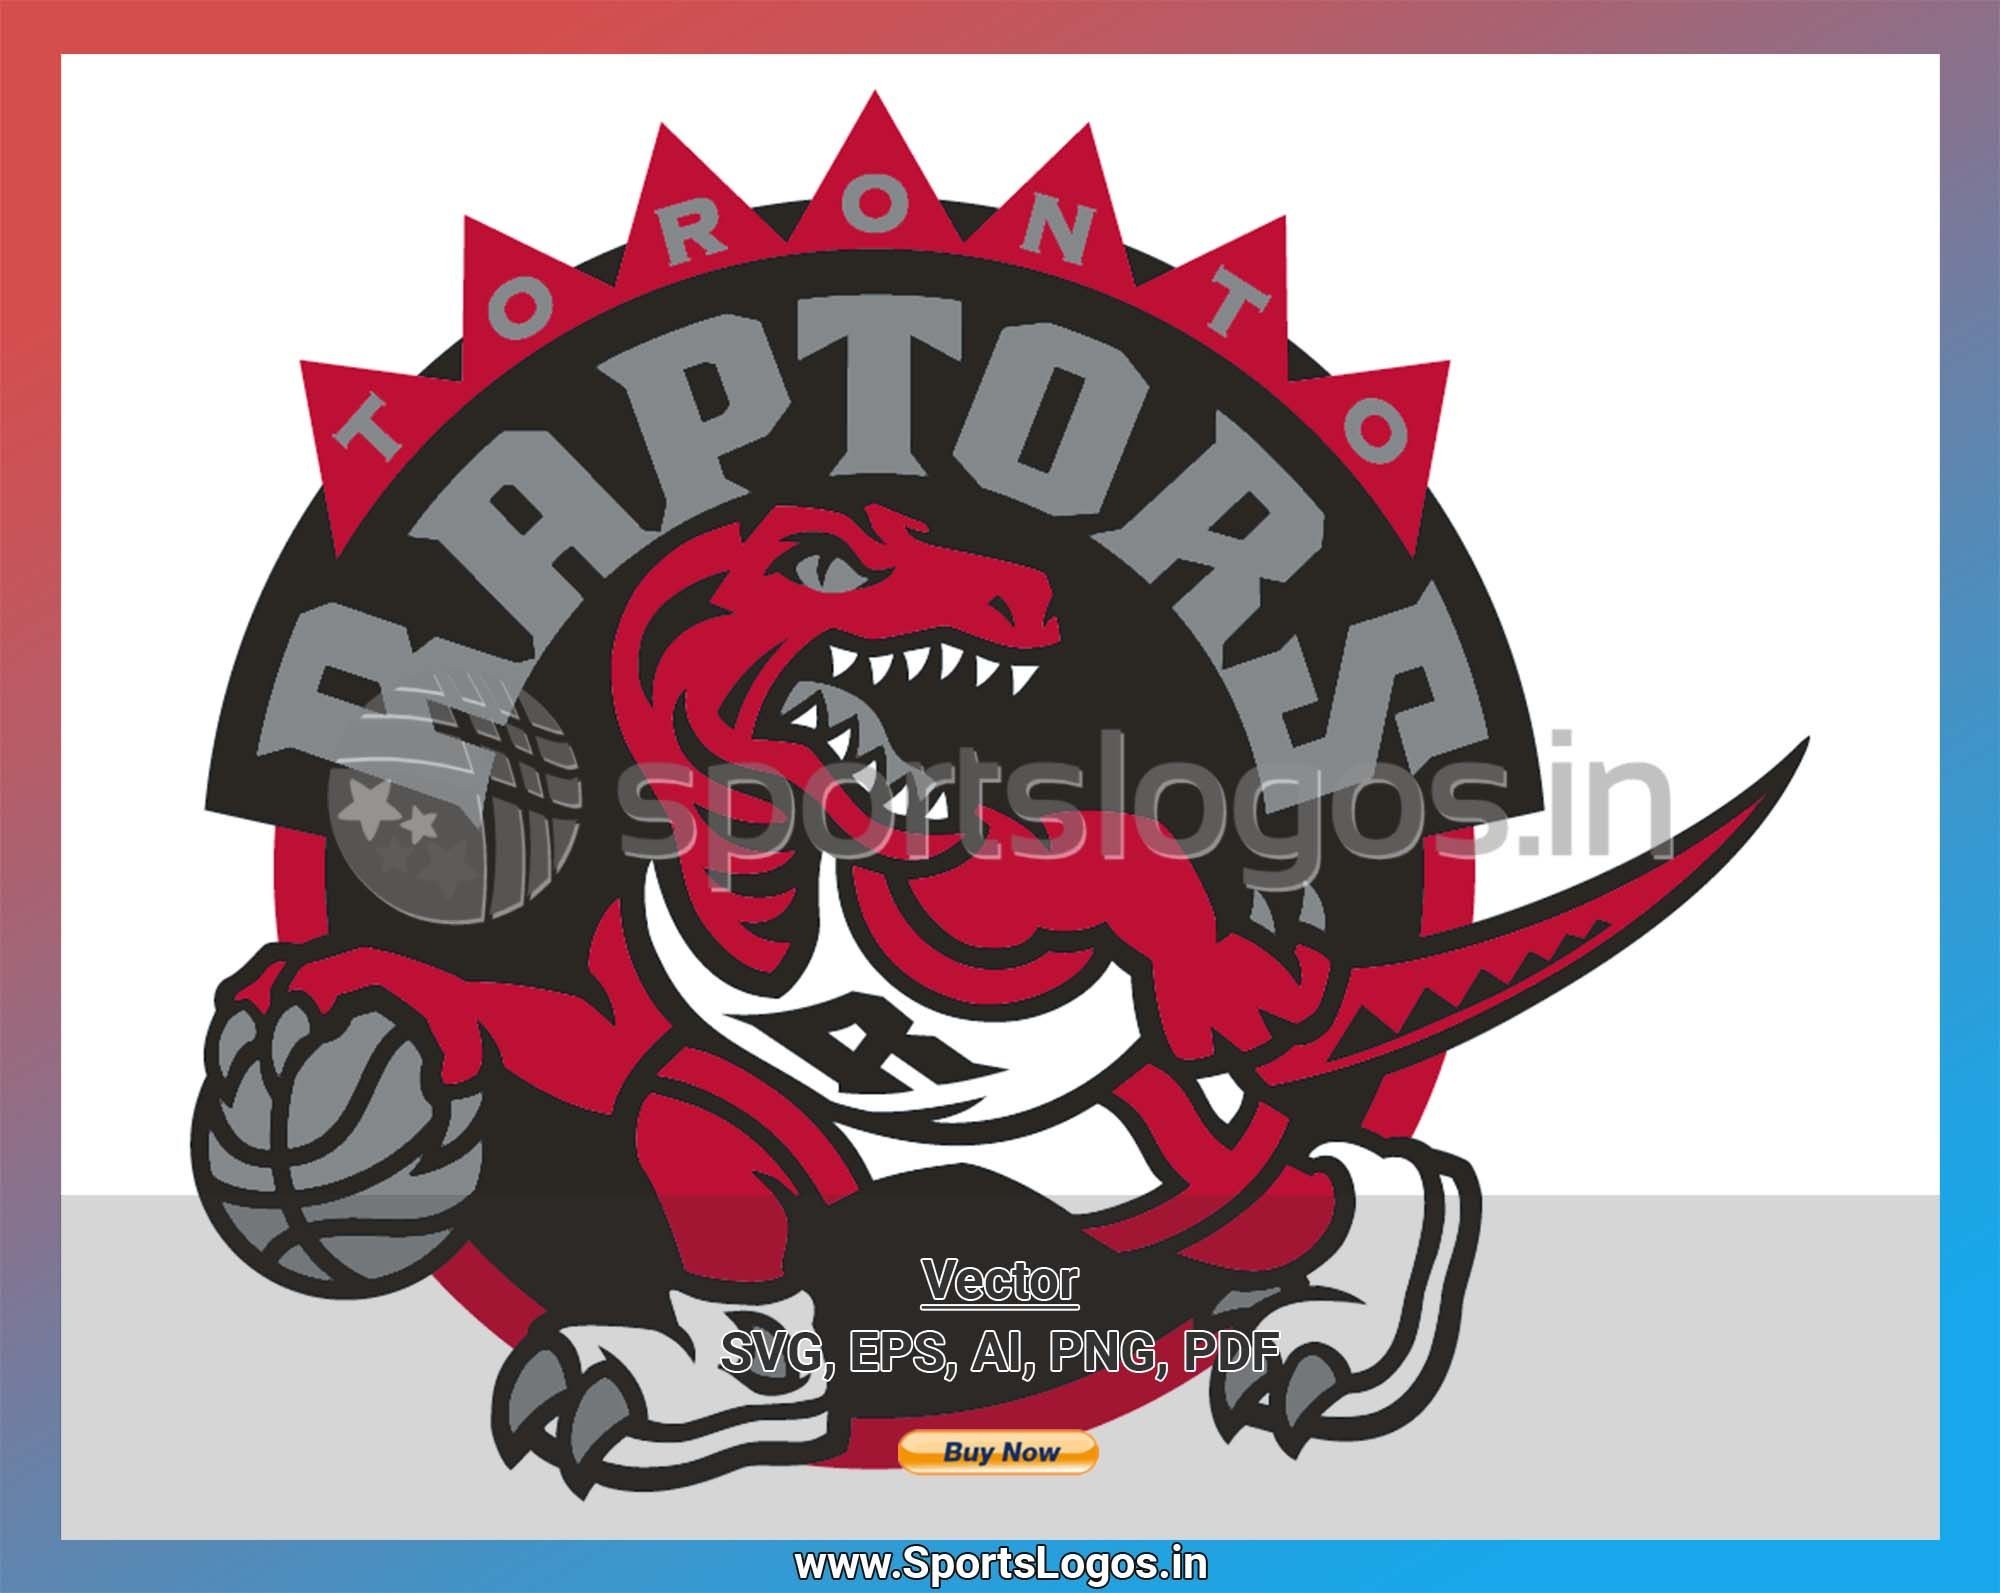 Toronto Raptors 2008/092014/15, National Basketball